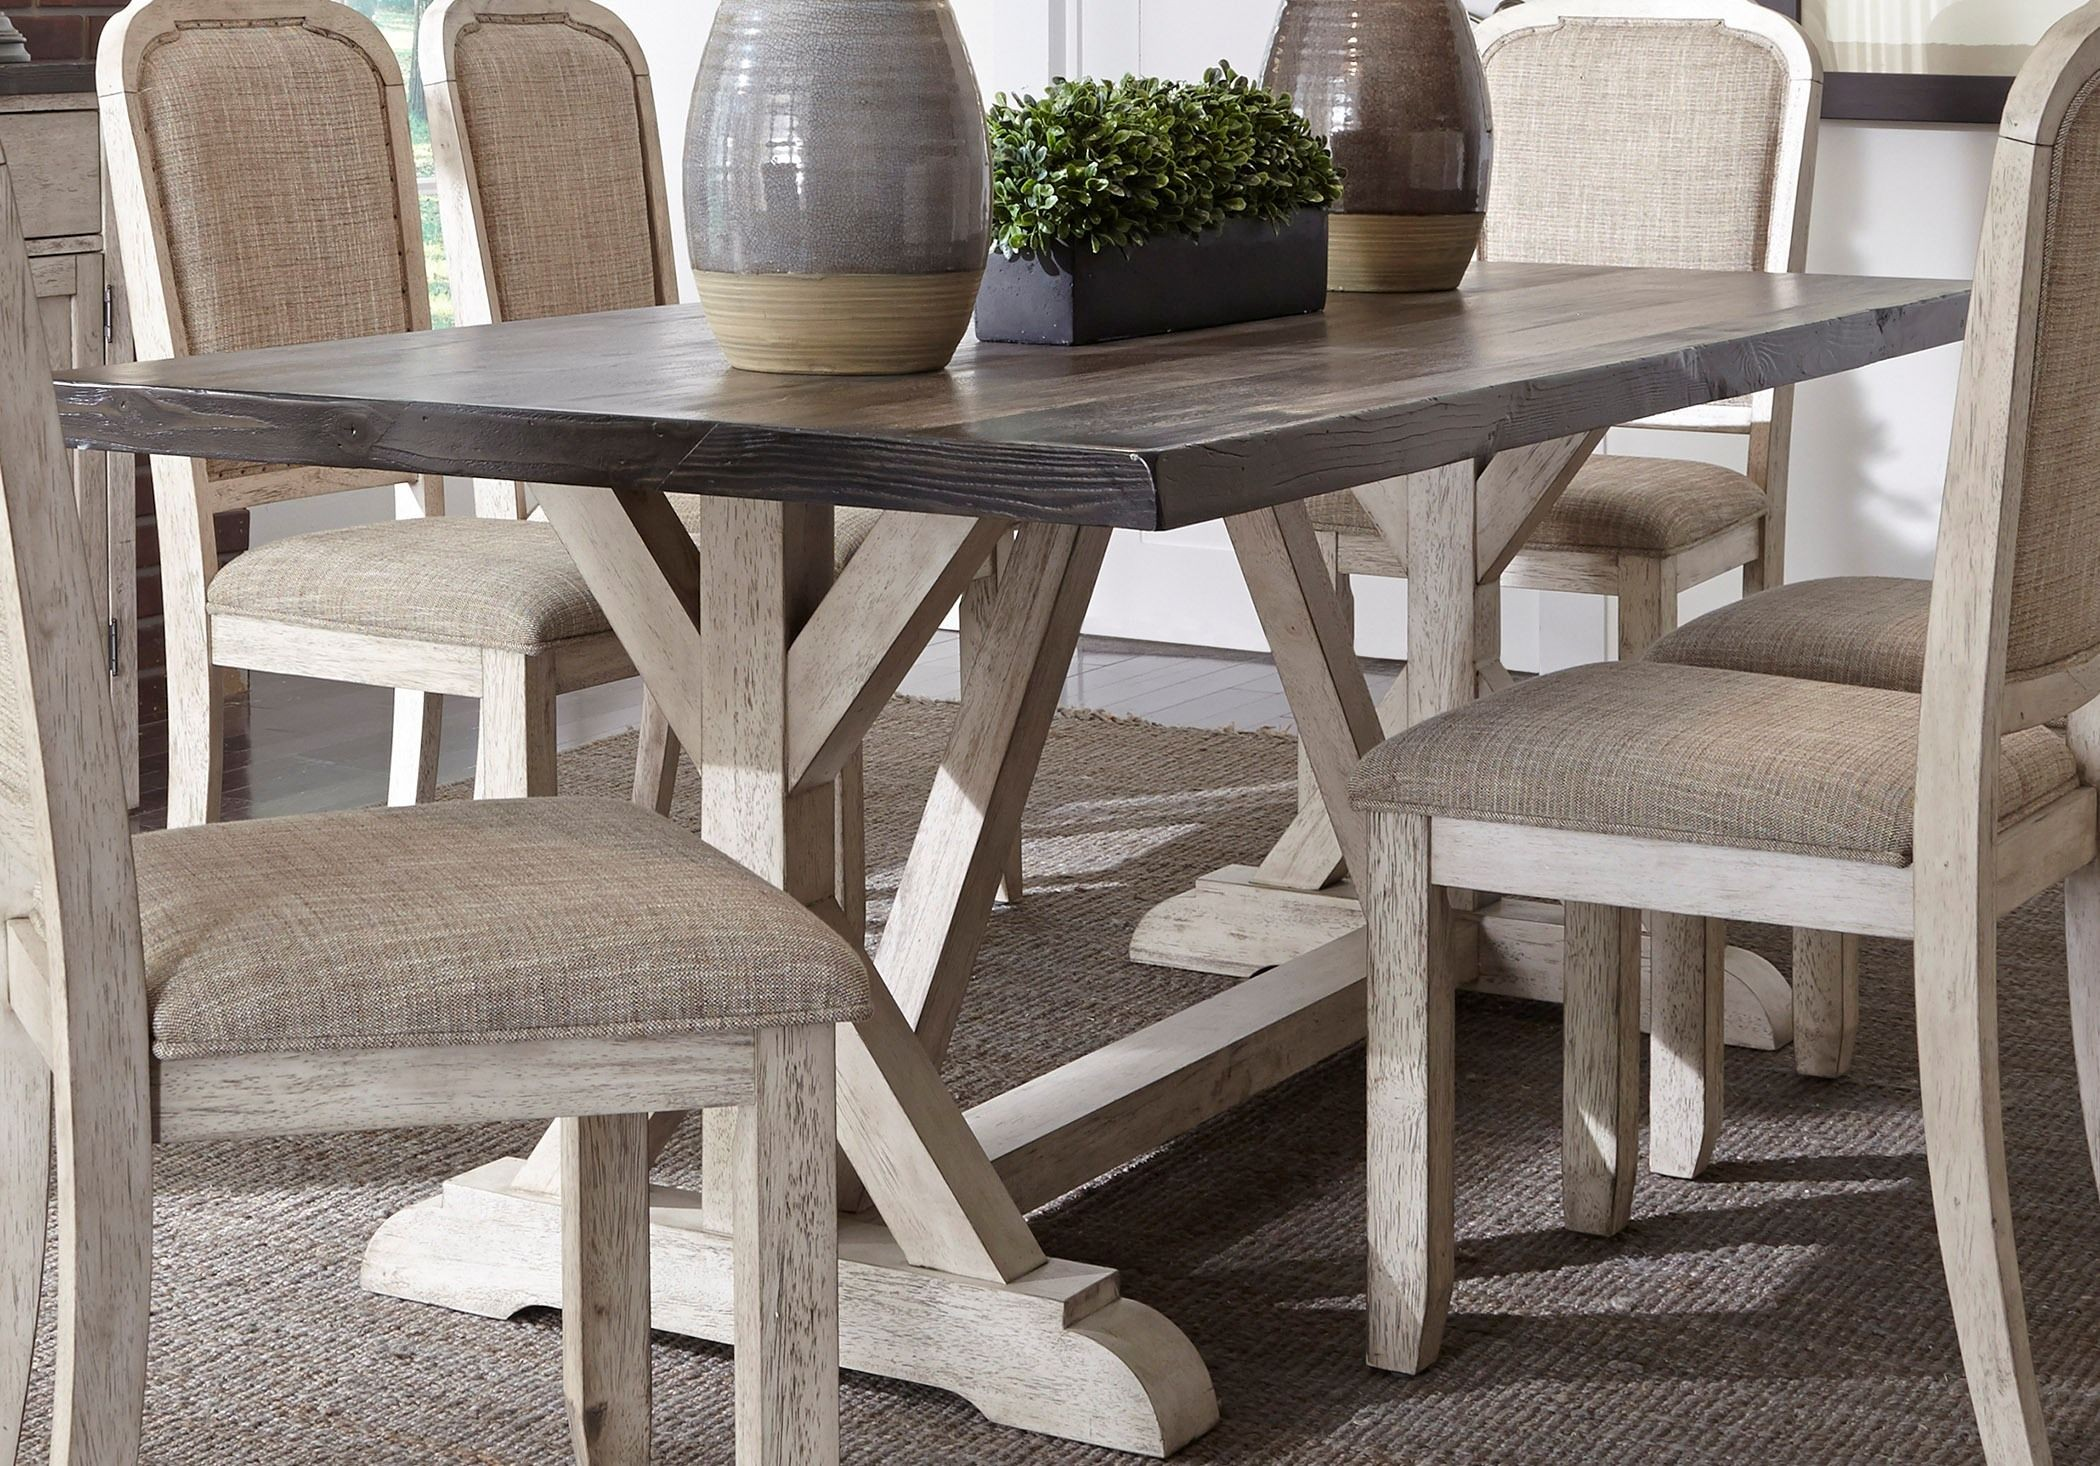 willowrun rustic white trestle dining table from liberty coleman furniture. Black Bedroom Furniture Sets. Home Design Ideas